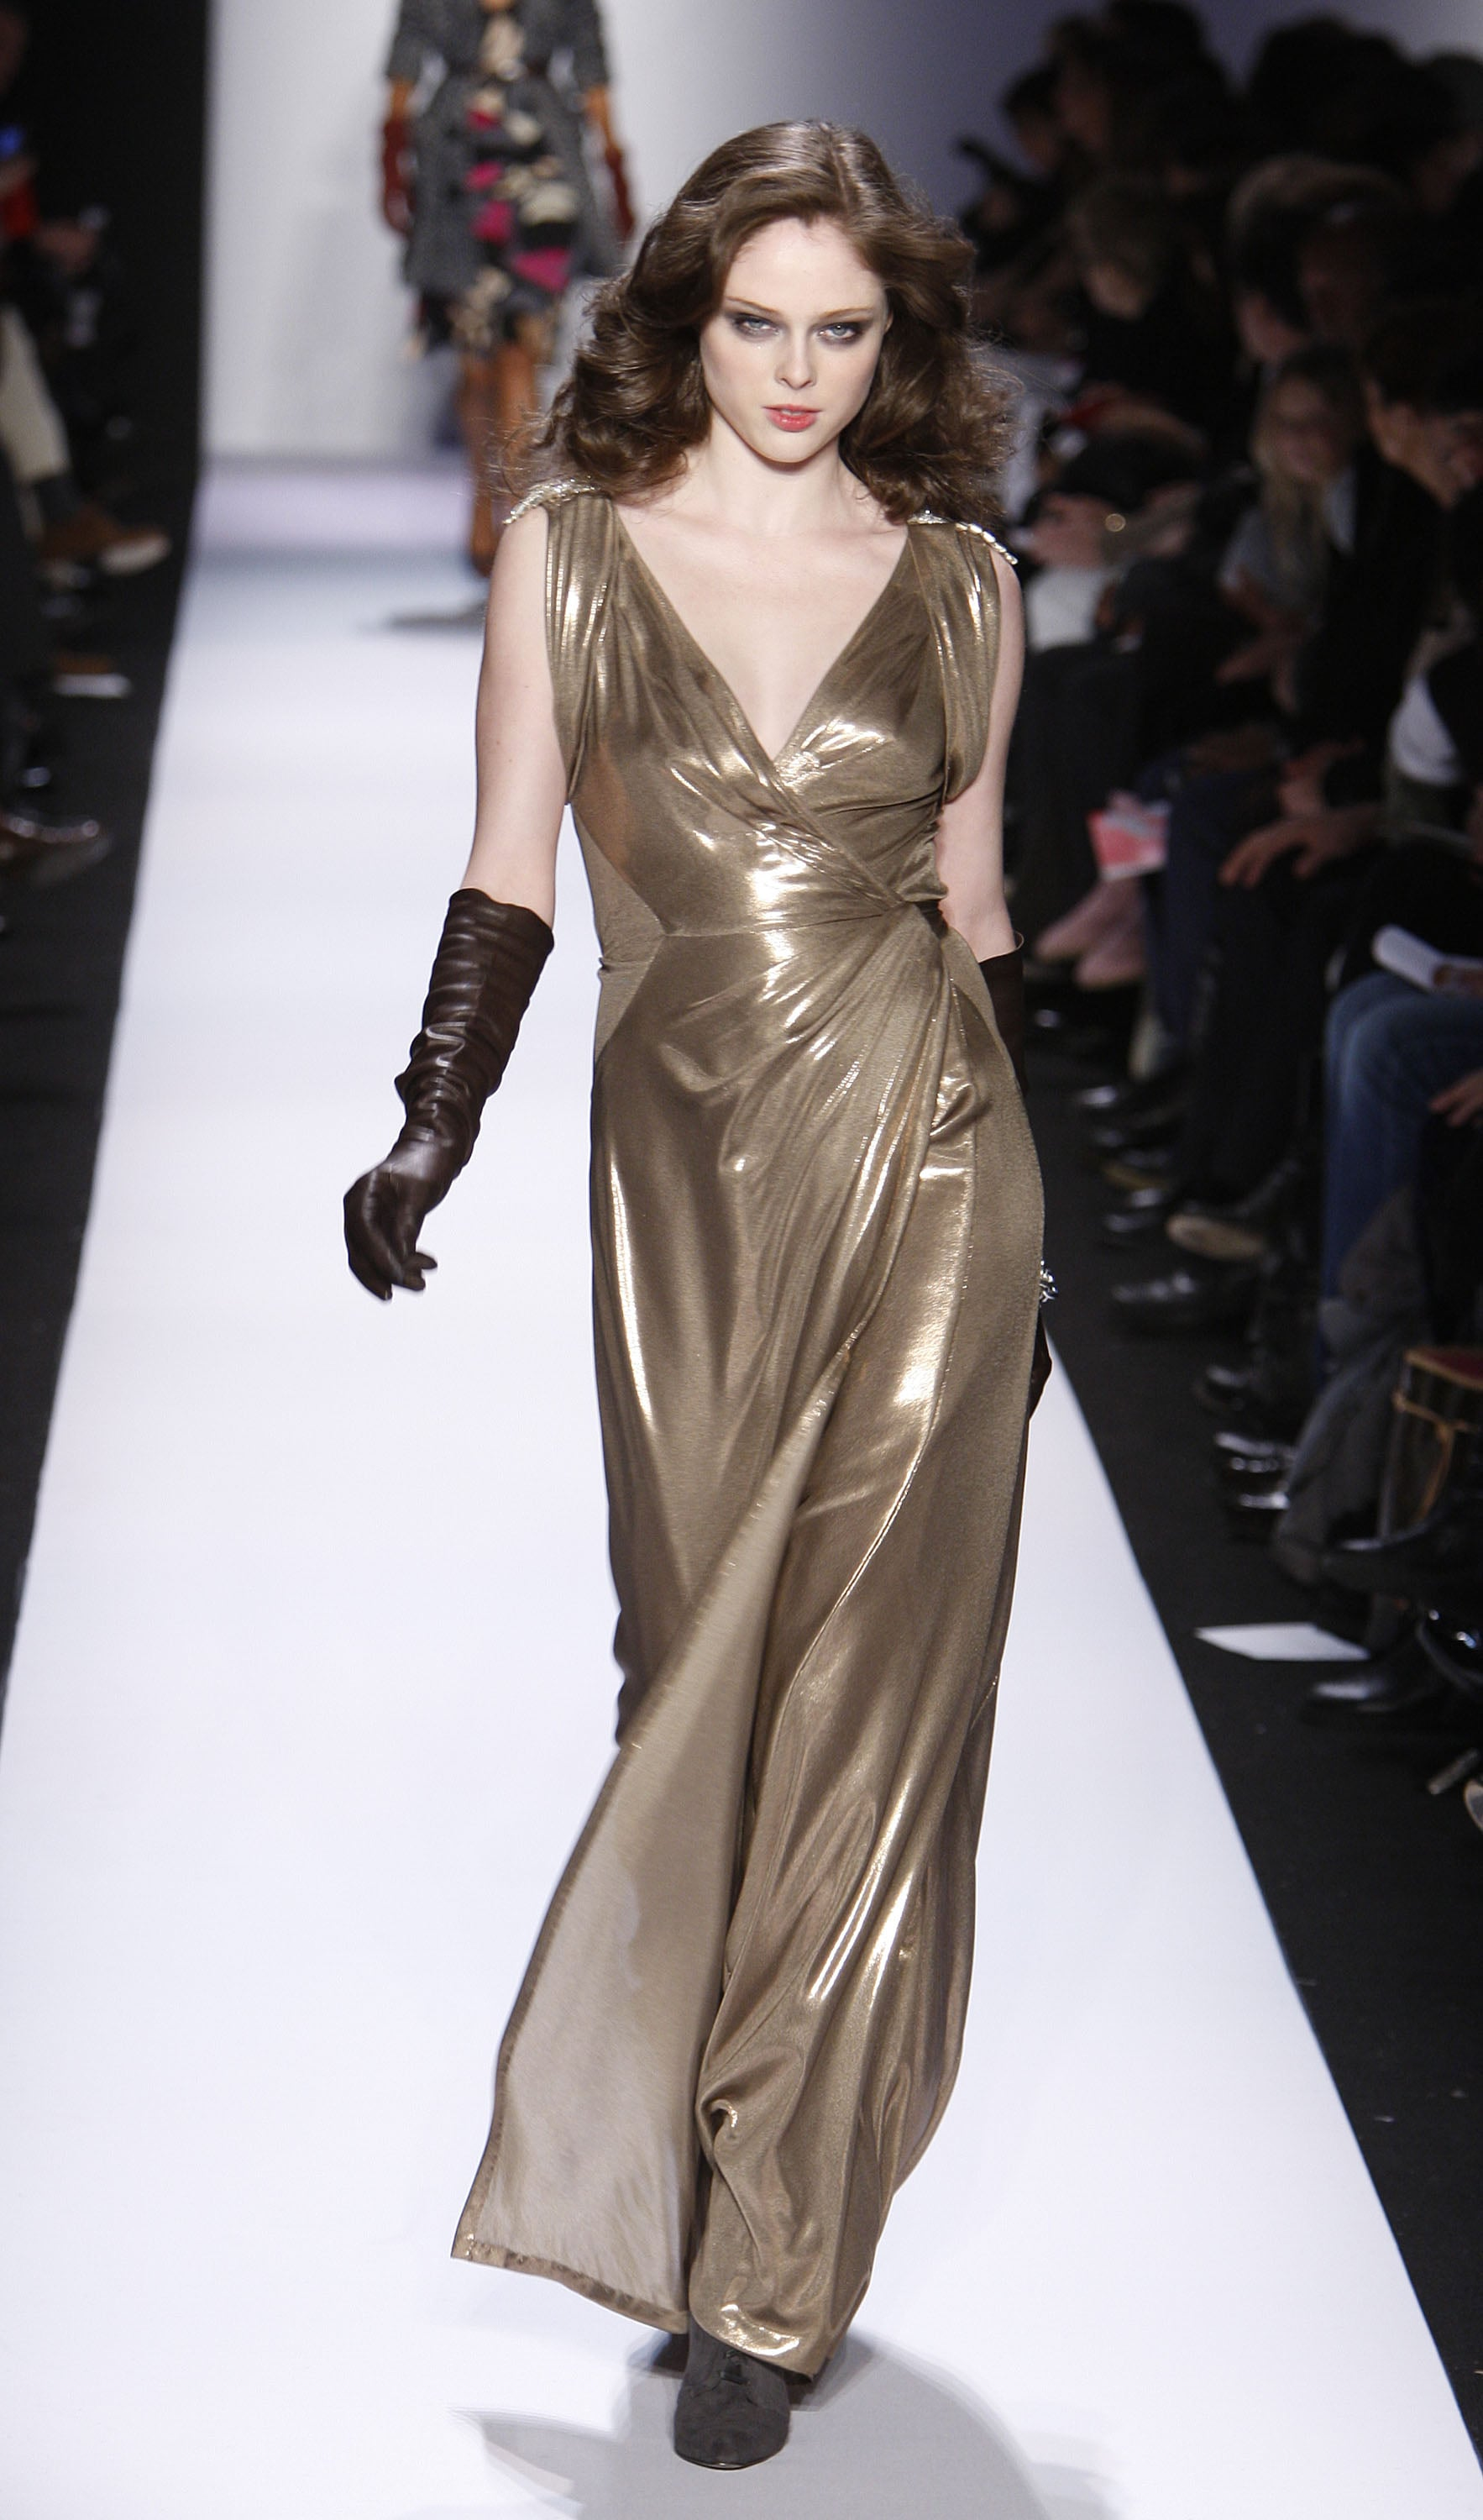 New York Fashion Week, Fall 2008: Diane von Furstenberg